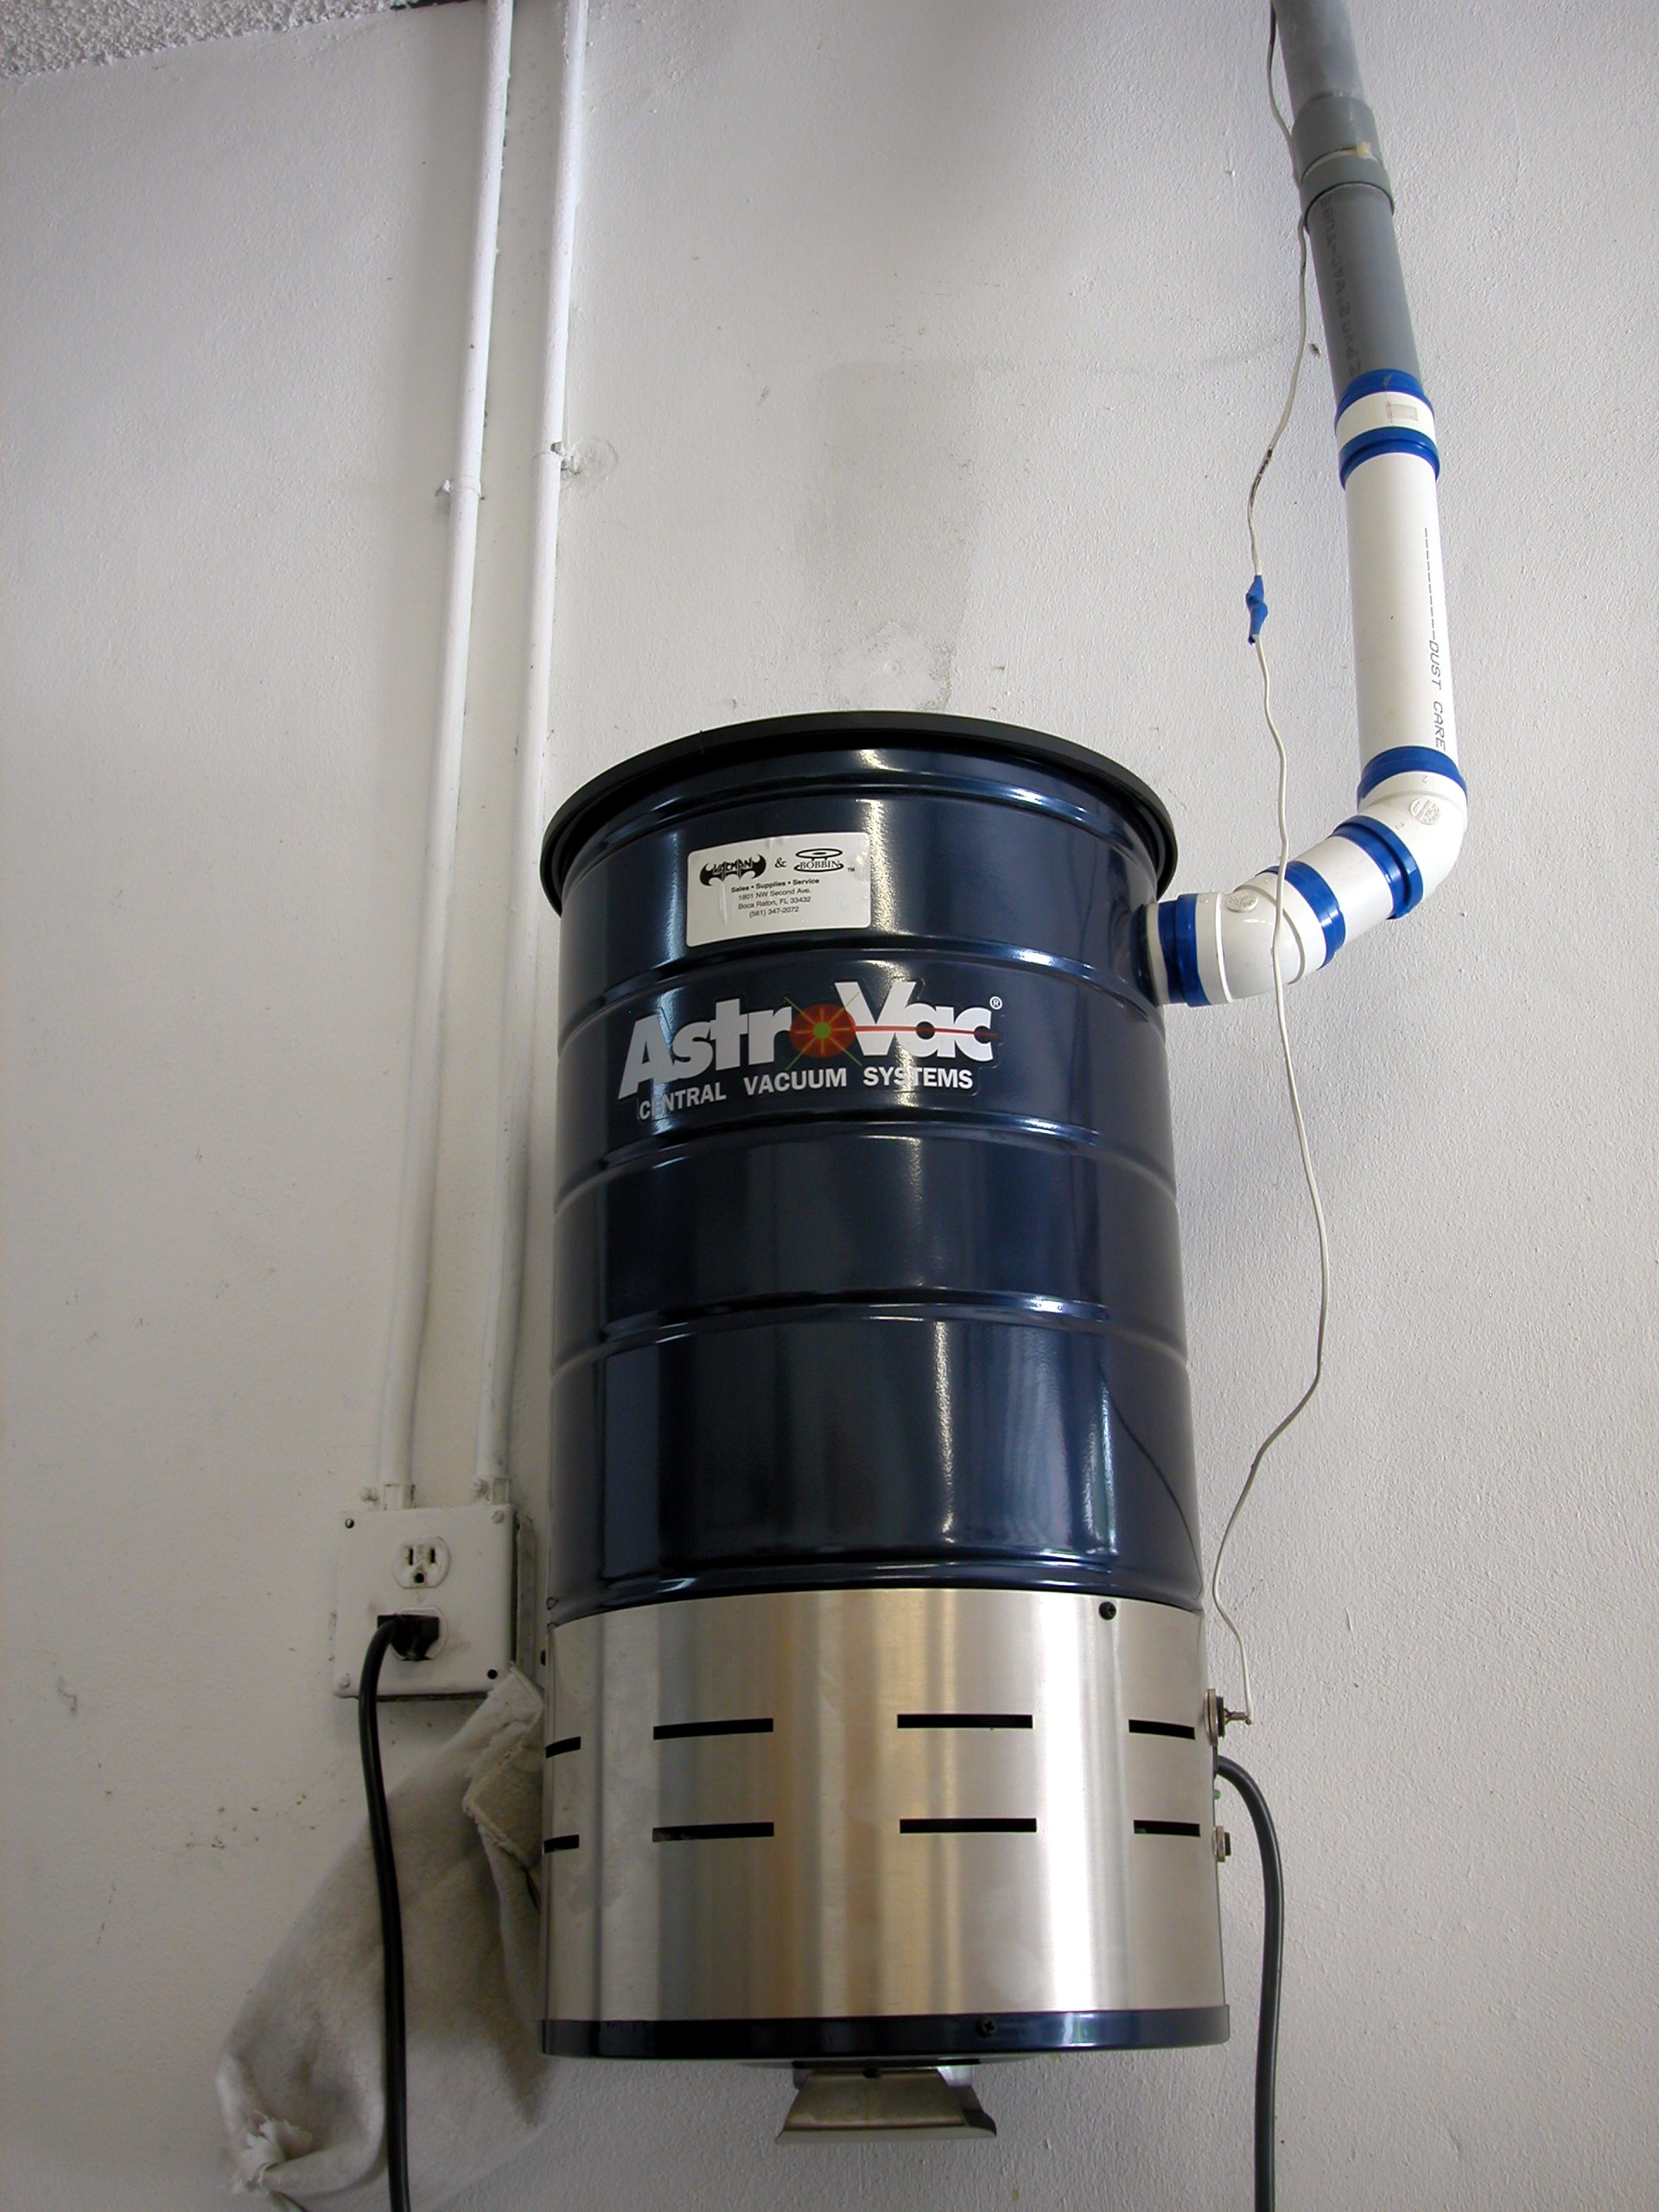 The power unit of a typical central vacuum cleaner for residential use